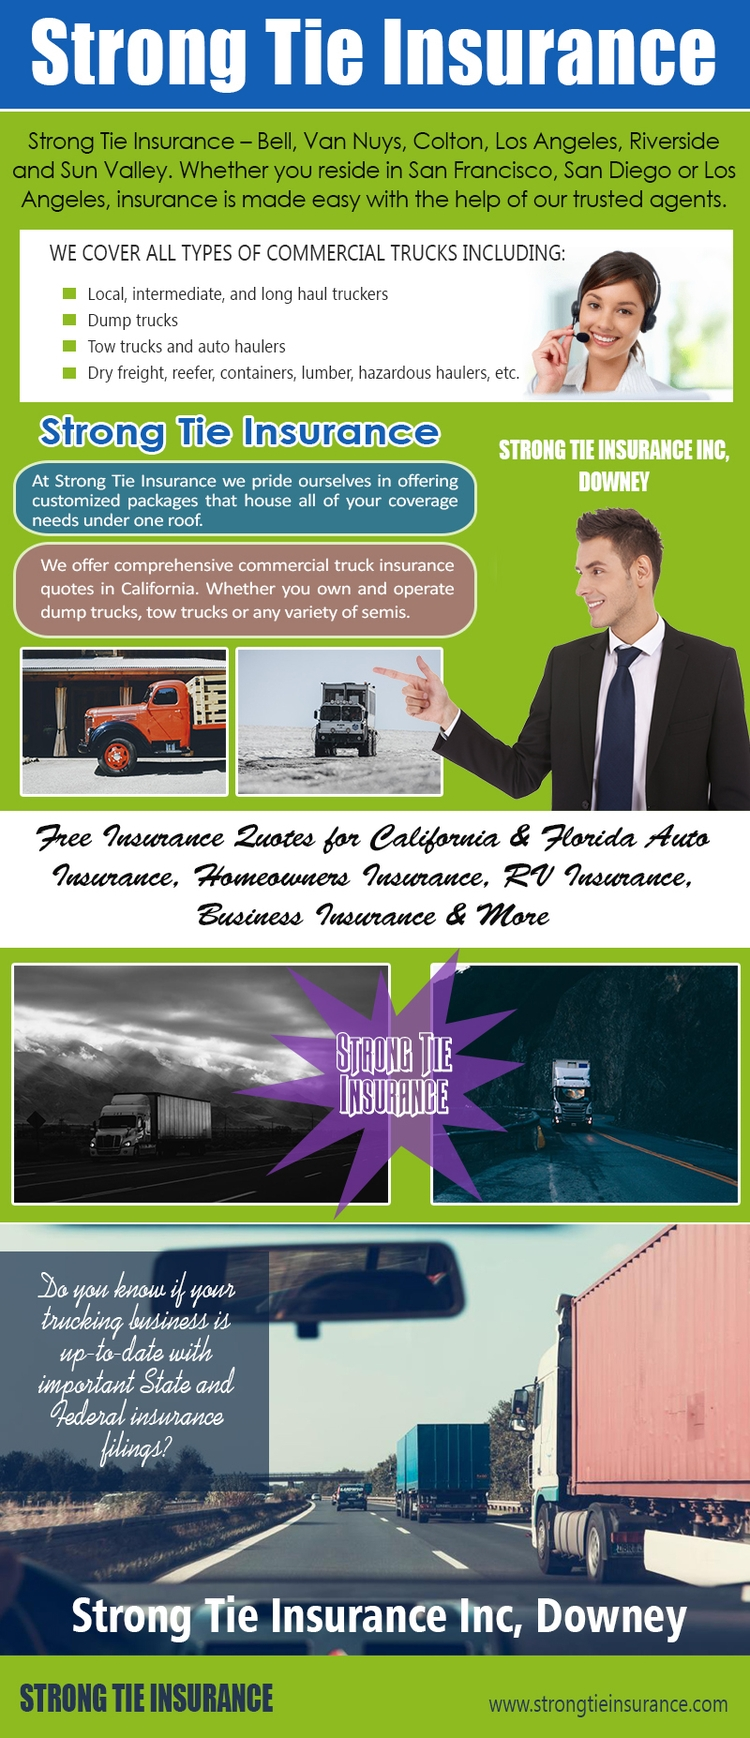 Strong Tie Insurance Downey Sit - strongtiecommercialtruckinginsurance | ello